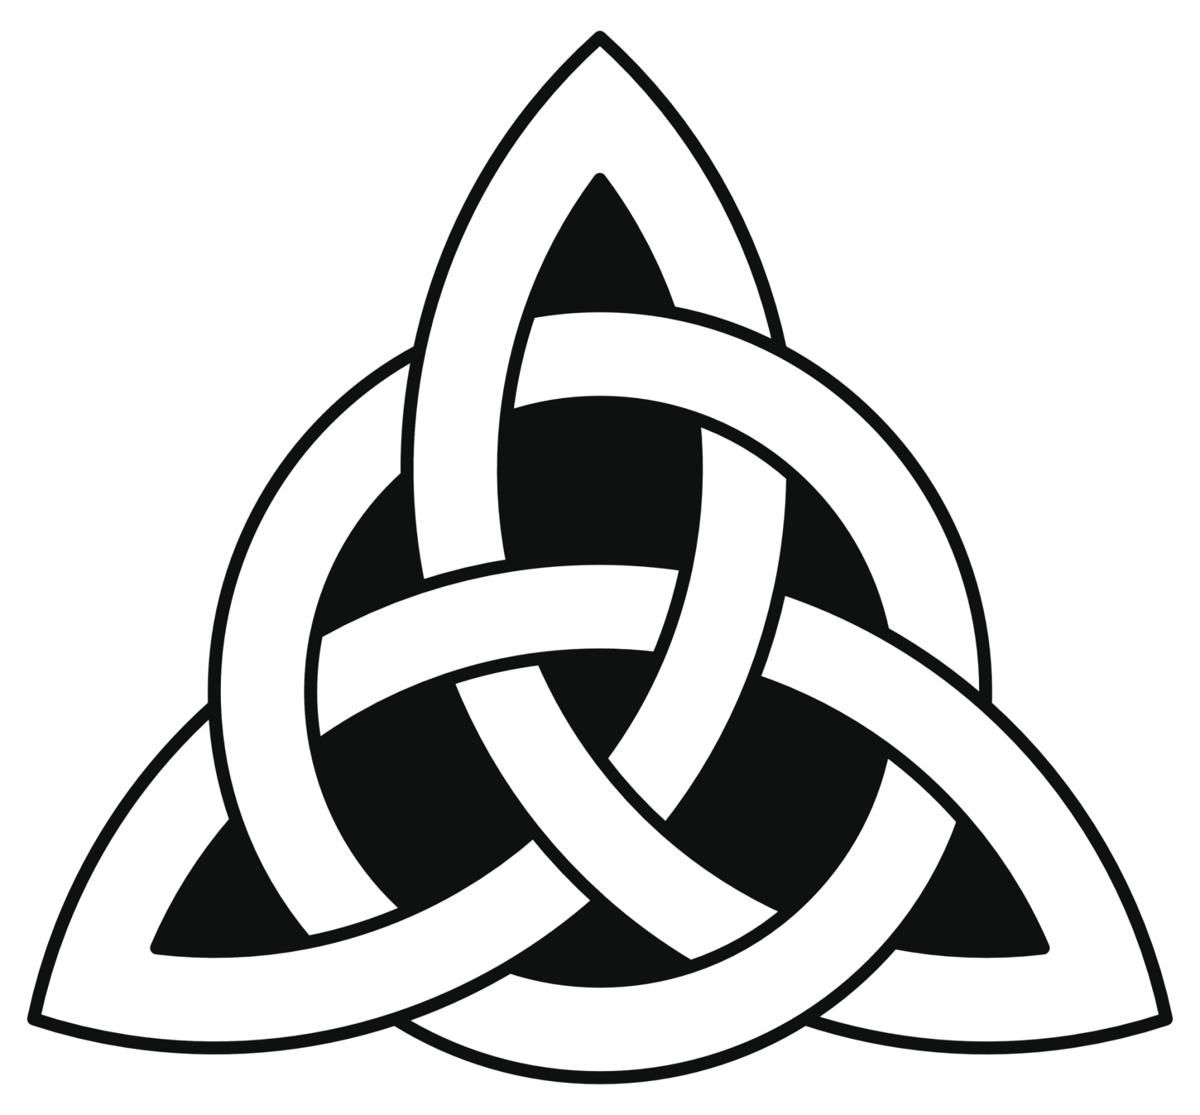 A list of truly enchanting irish celtic symbols and their meanings irish celtic symbols are very popular all the symbols stand for something unique and buycottarizona Image collections